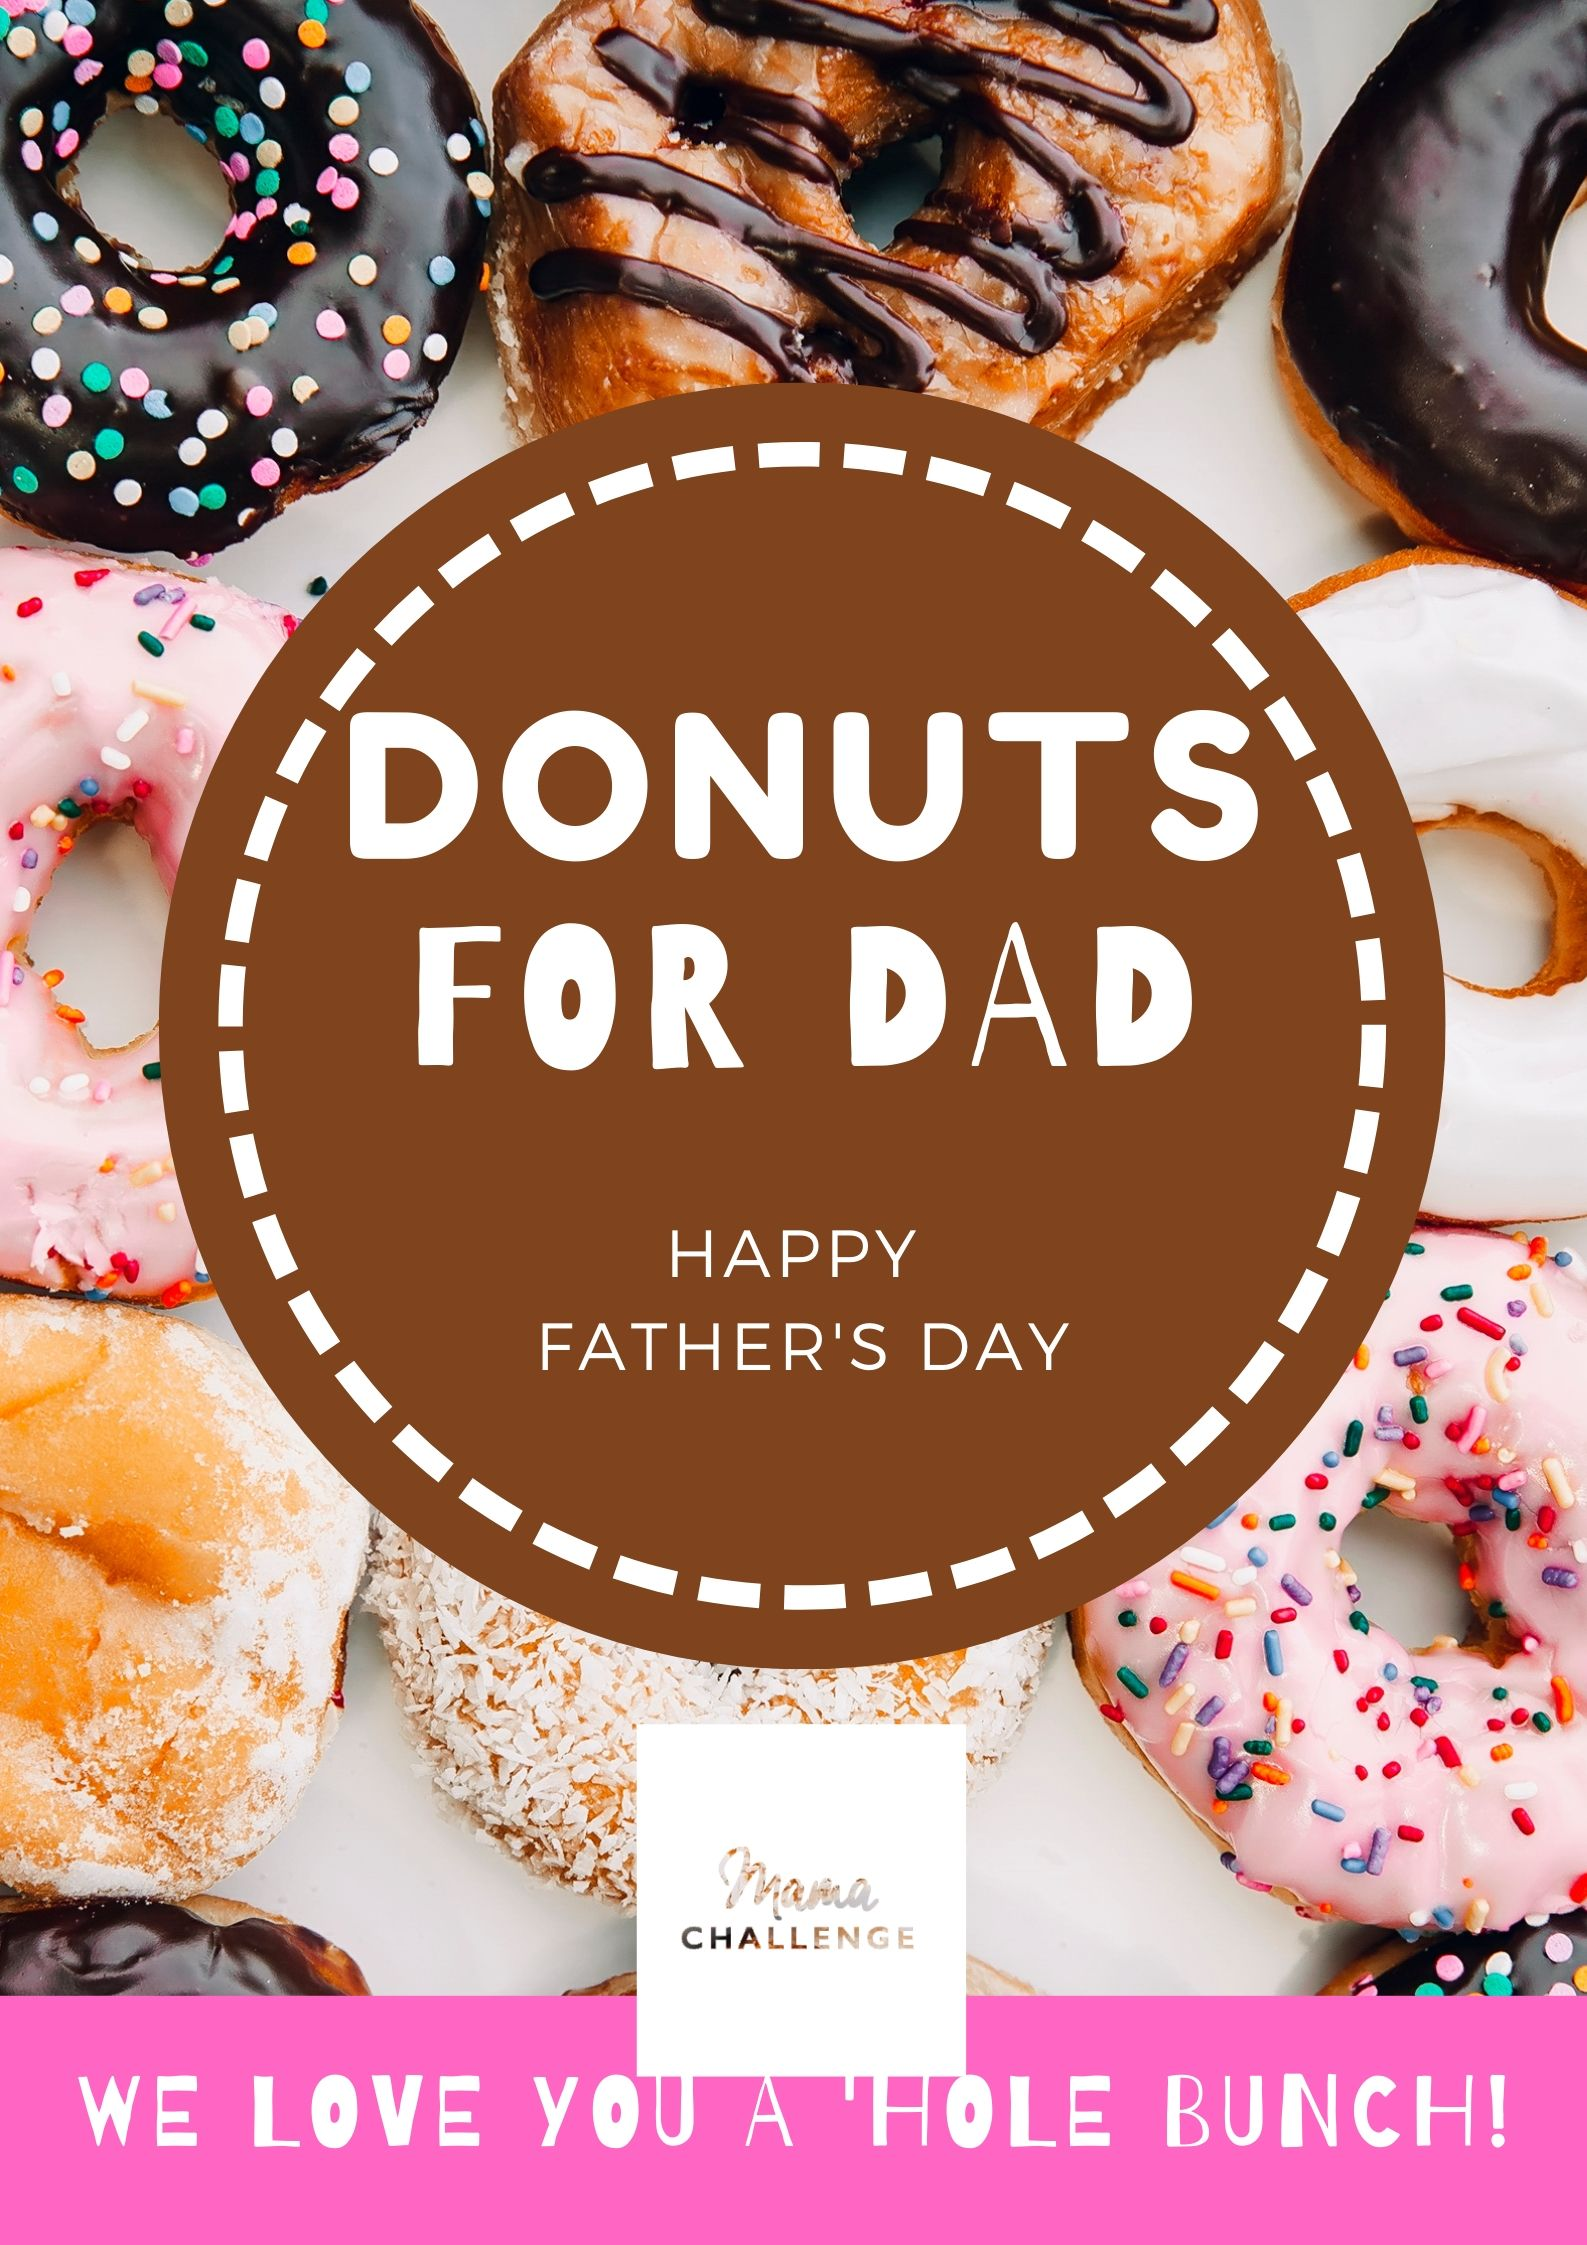 Donuts for Dads - Download MamaChallenge